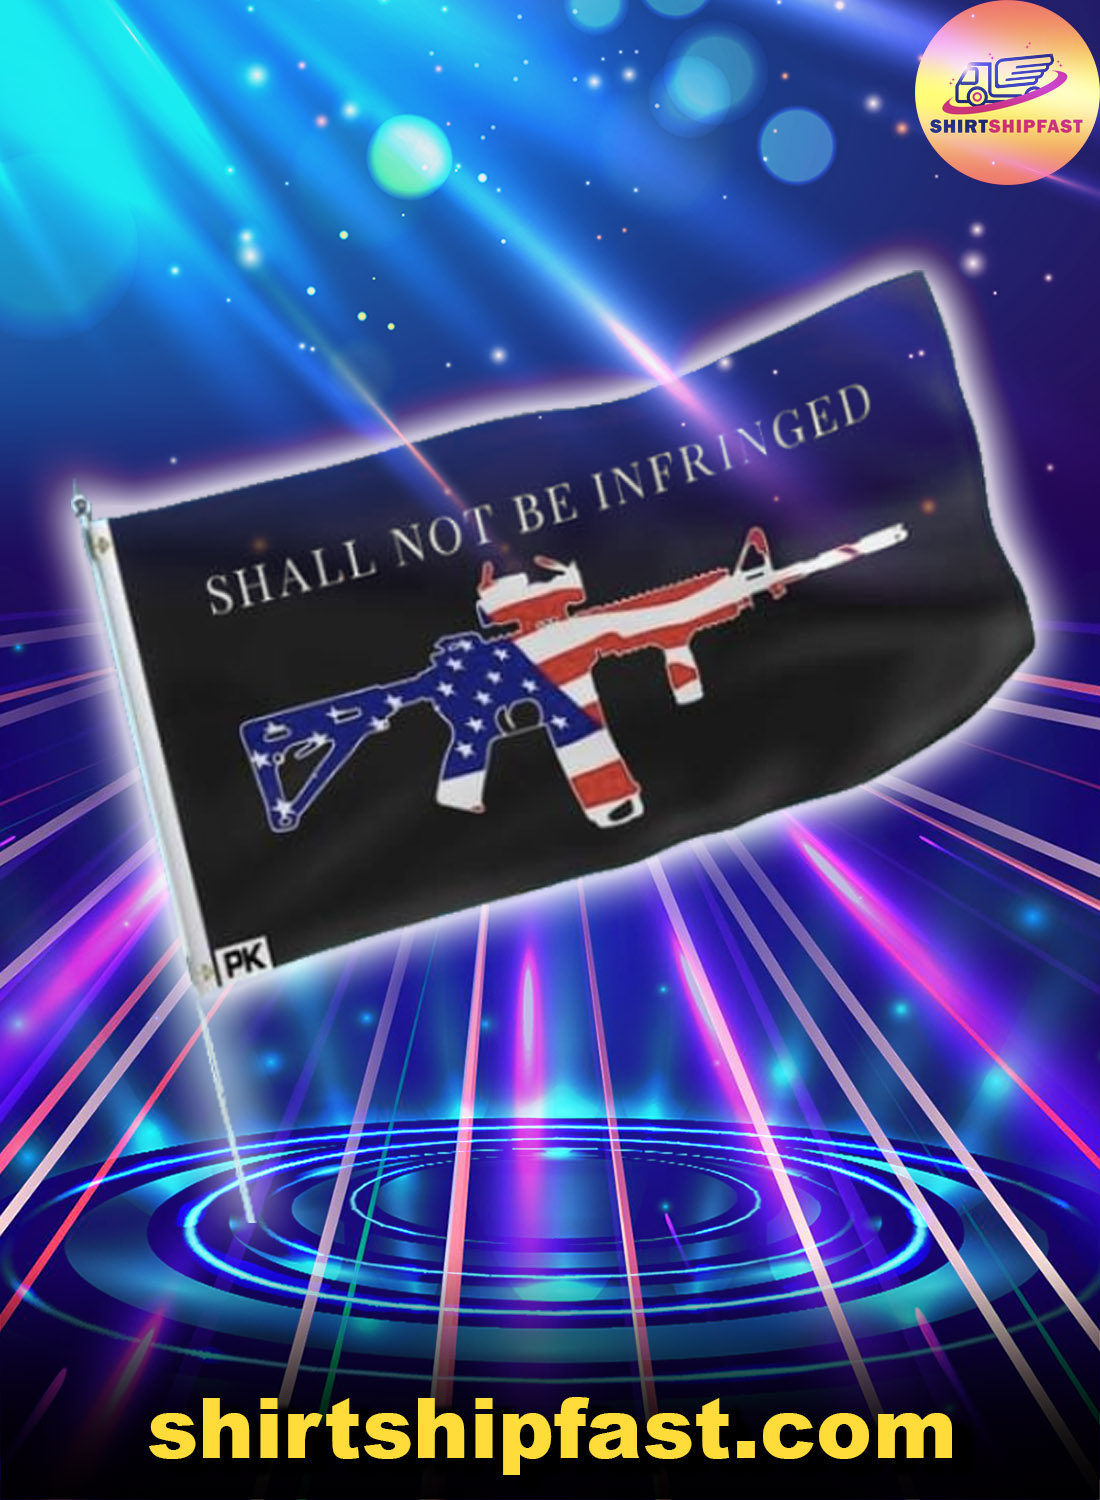 Gun Shall not be infringed flag - Picture 1